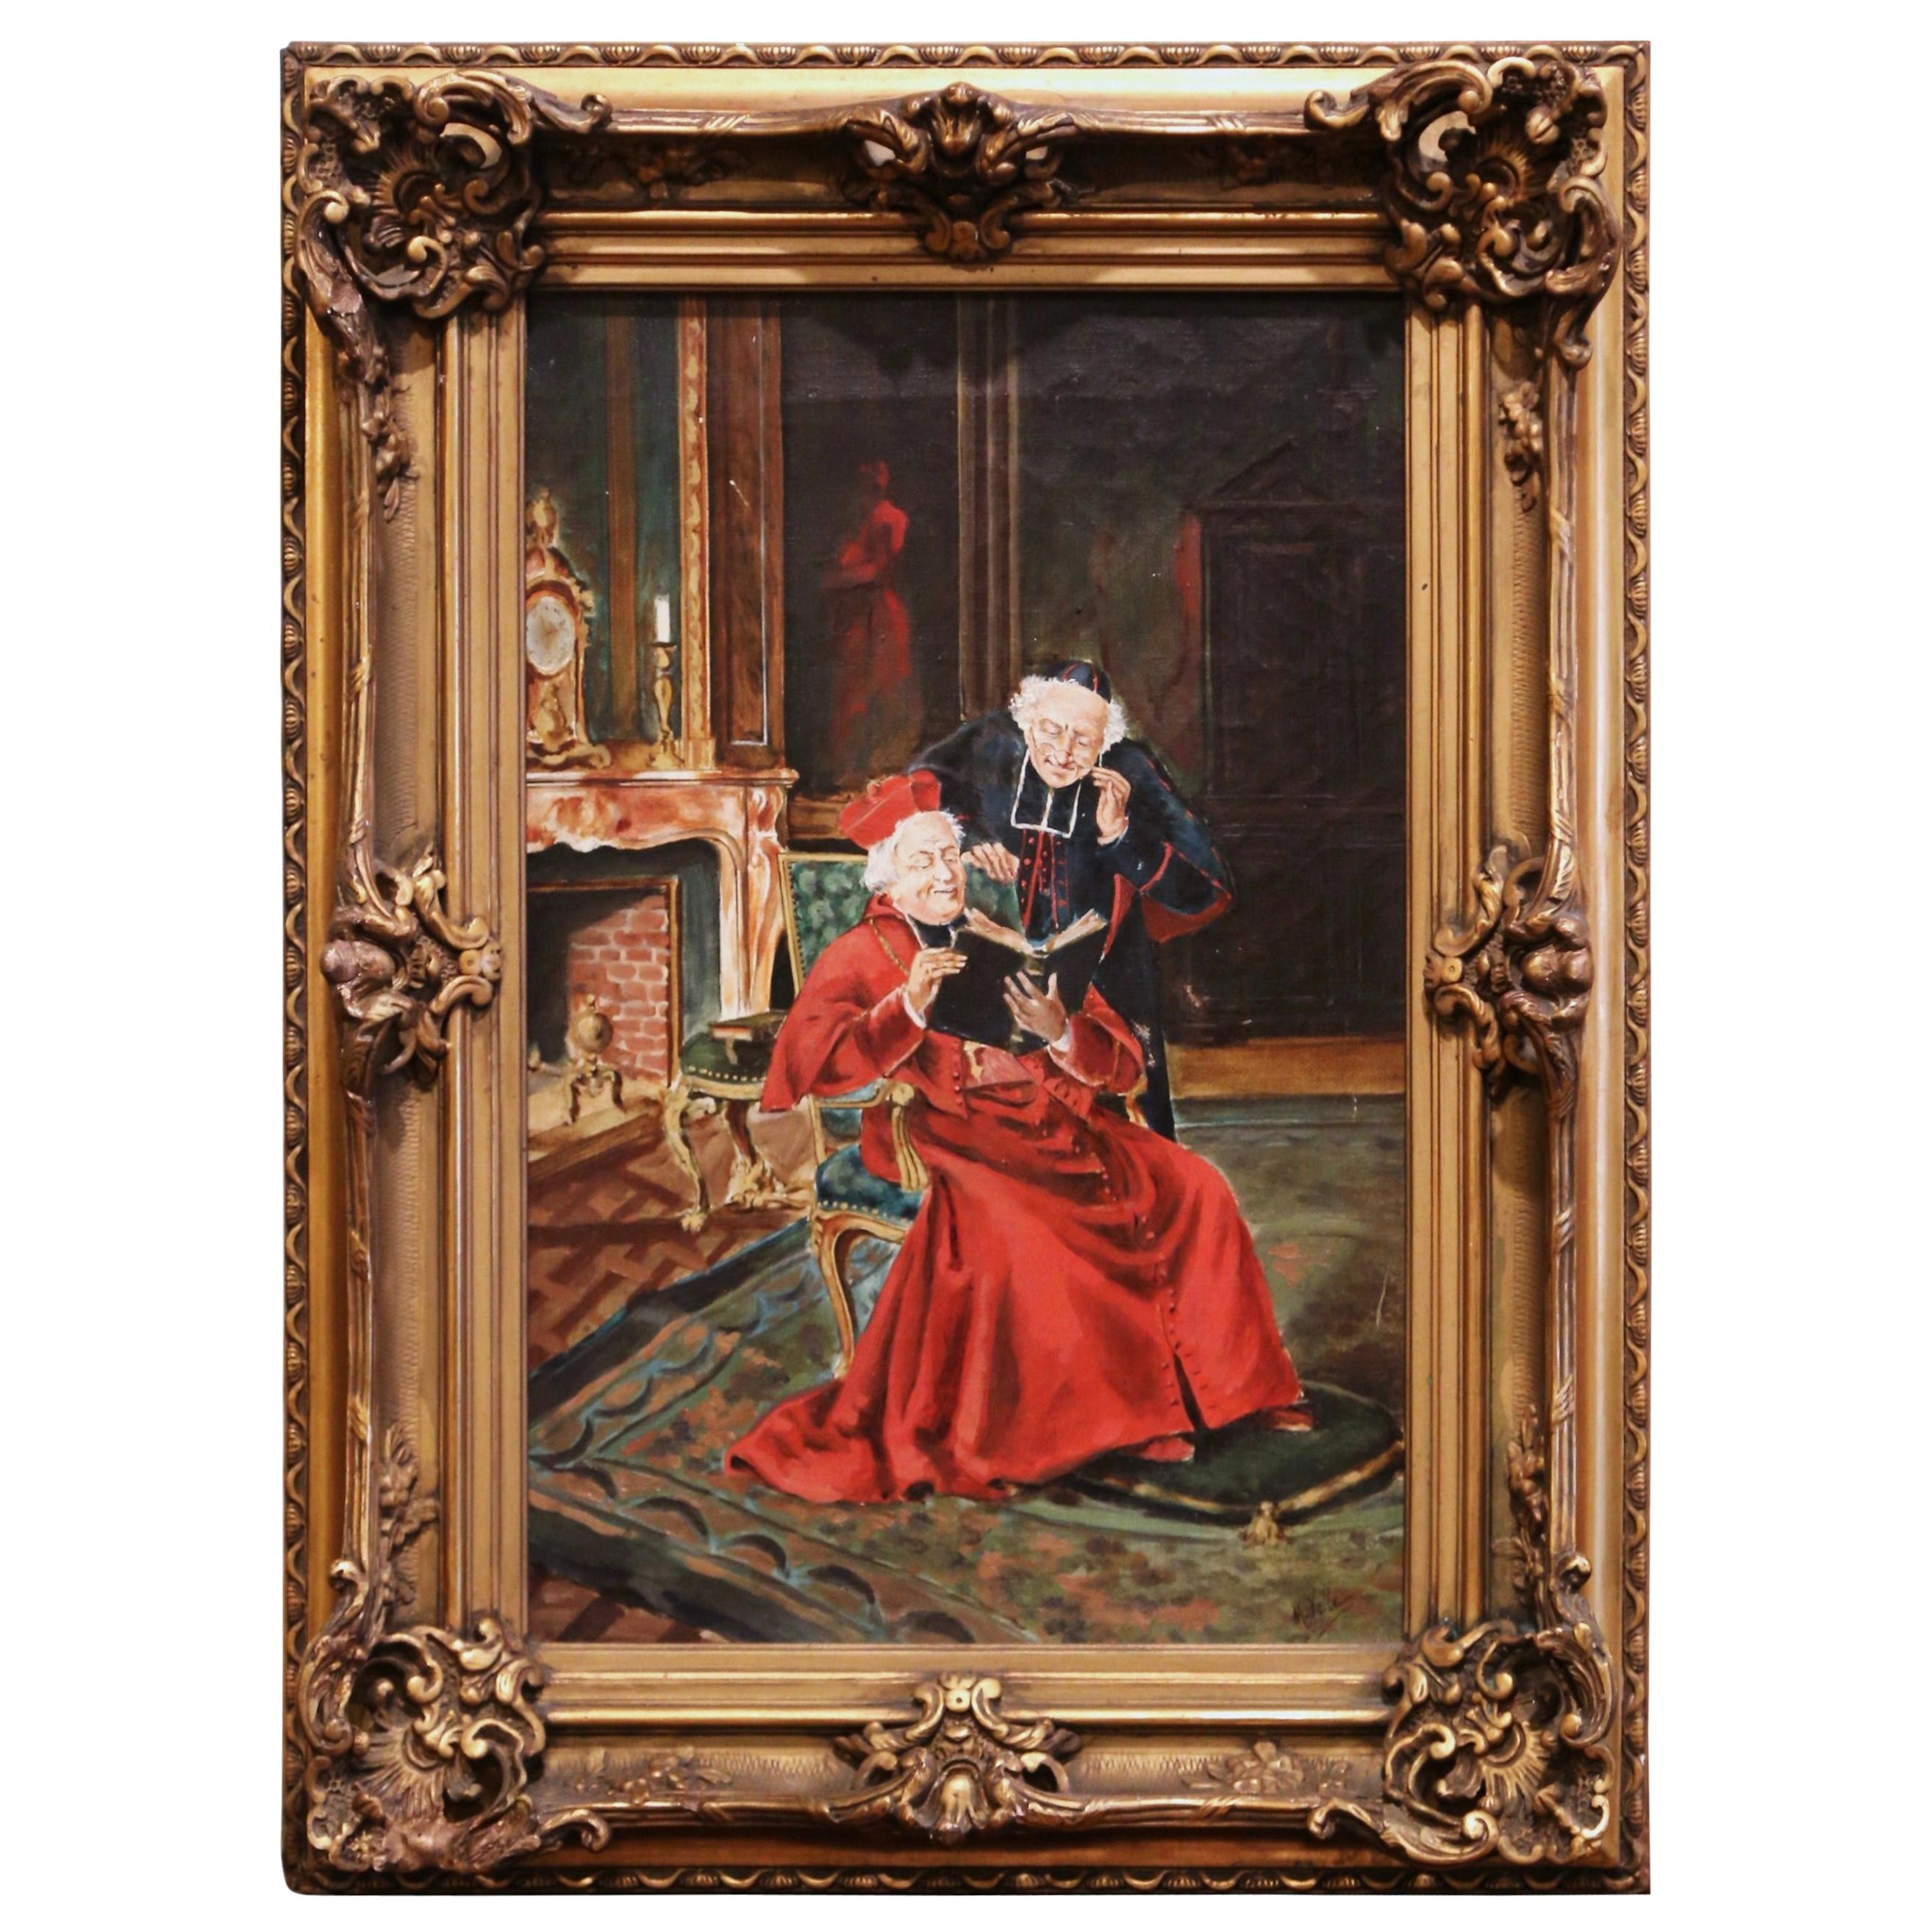 19th Century French Priest Oil Painting in Carved Giltwood Frame Signed M. Valle